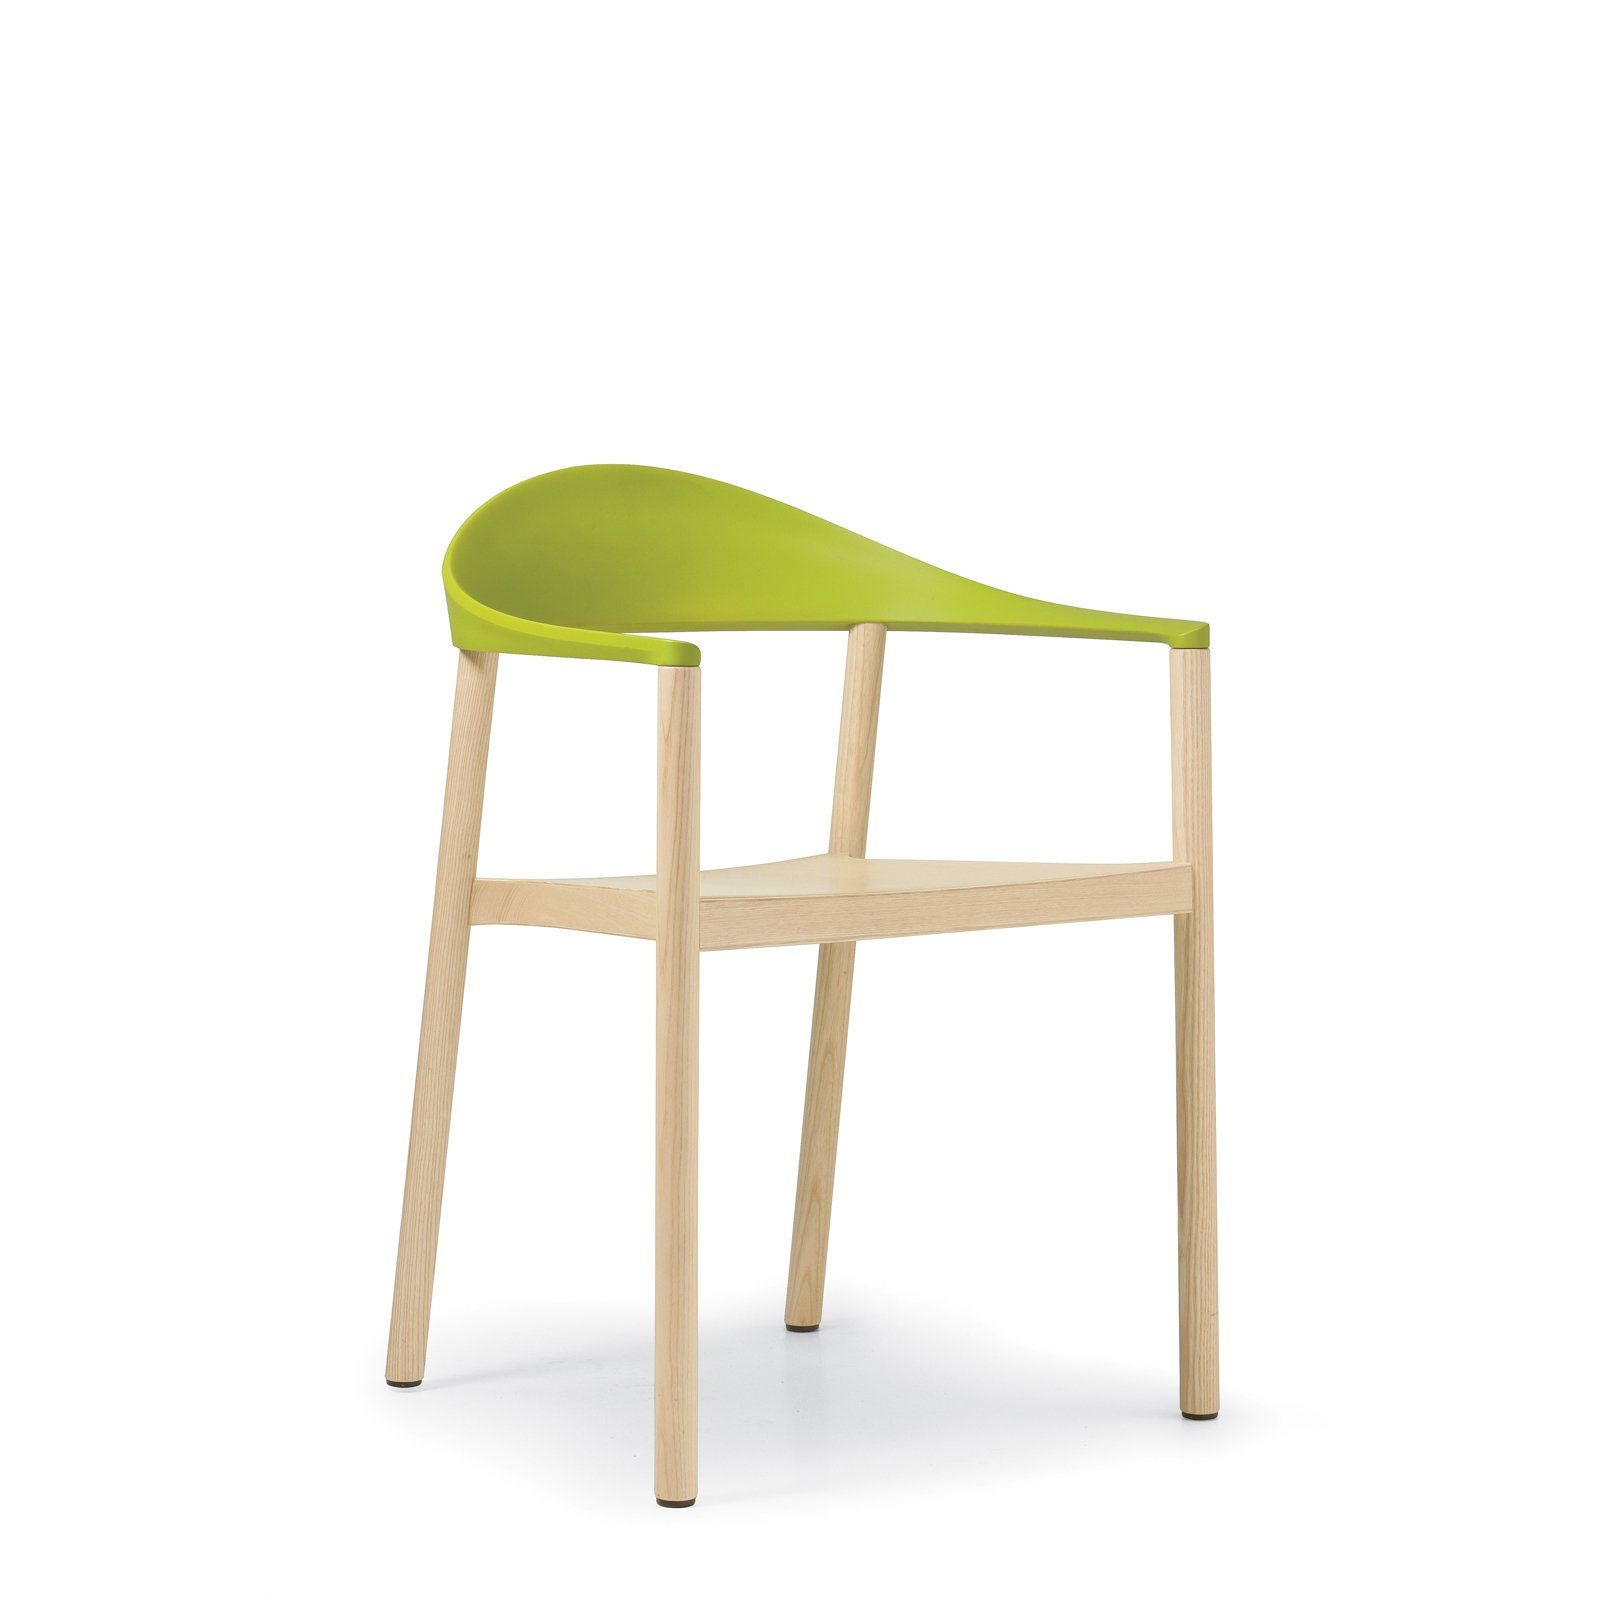 The Monza Chair, designed by Konstantin Grcic for Plank.  Photo 2 of 4 in This Weekend: 11.19-11.22